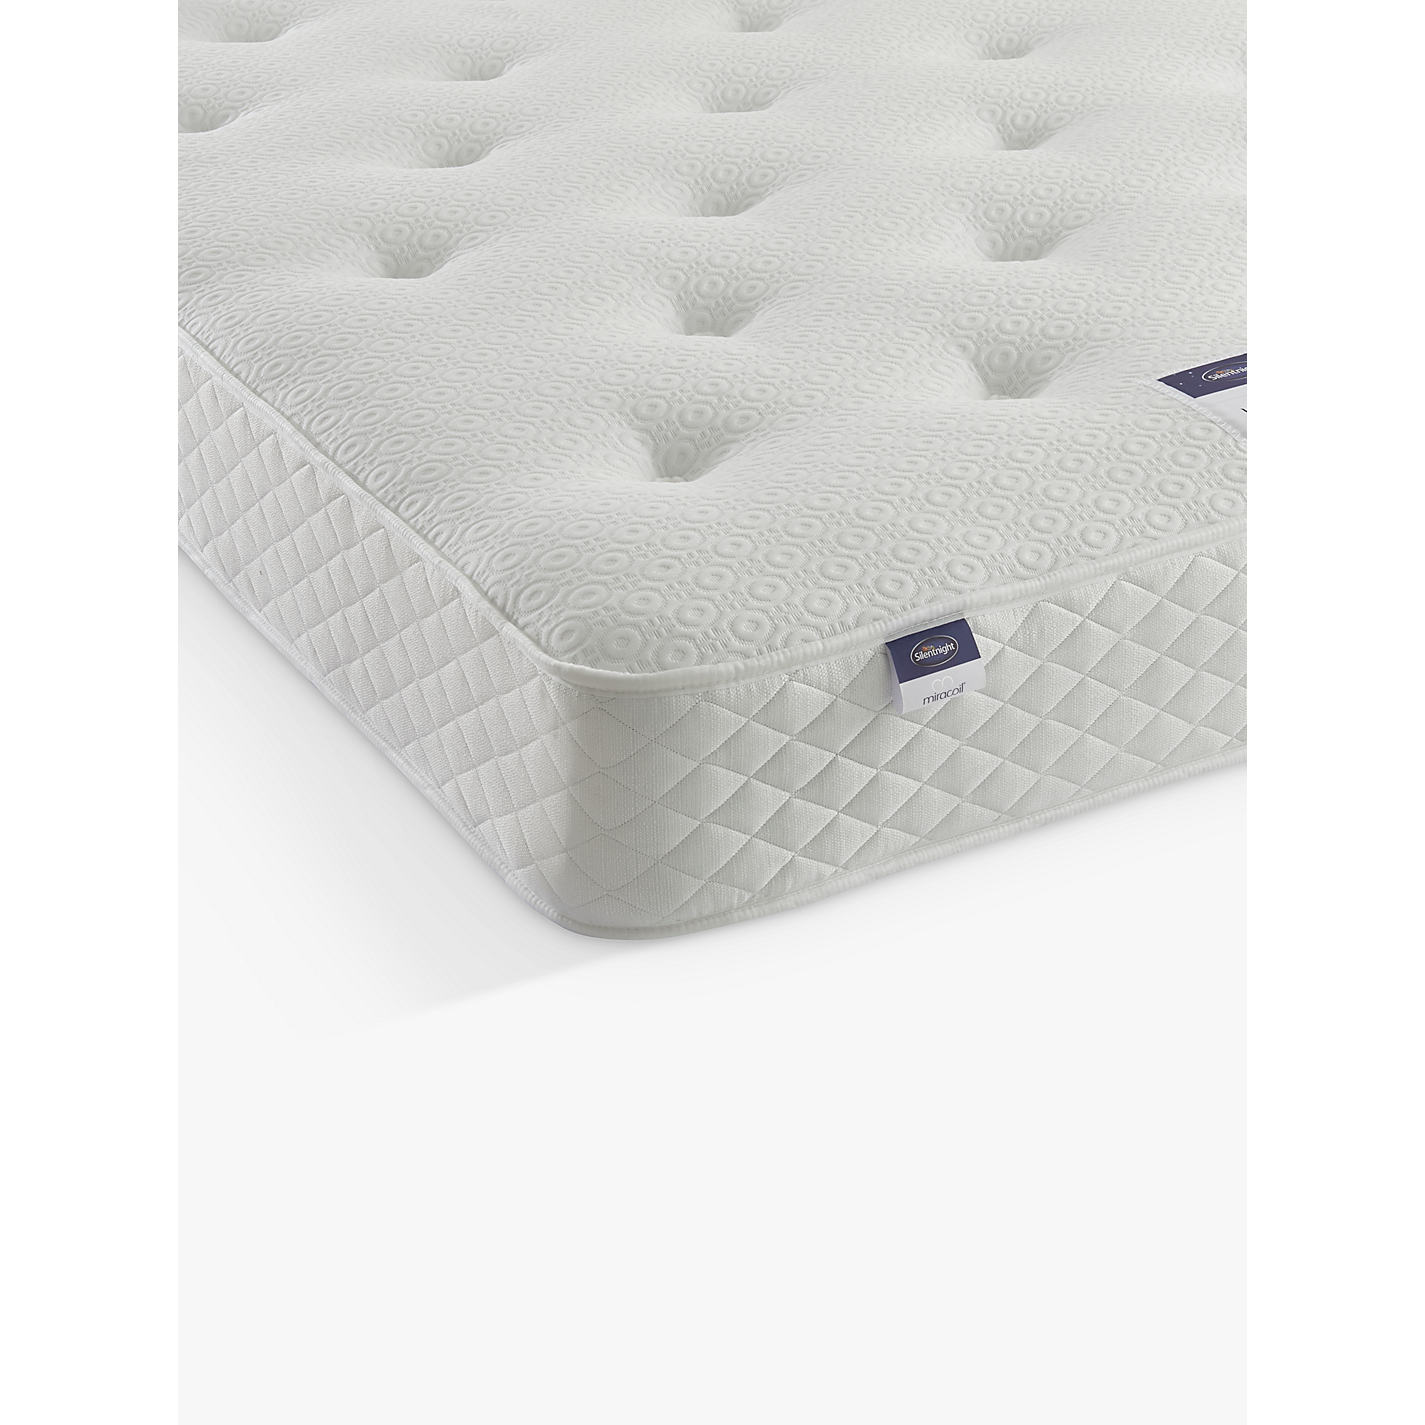 Silentnight Miracoil Ortho Open Spring Mattress Firm Double Online At Johnlewis